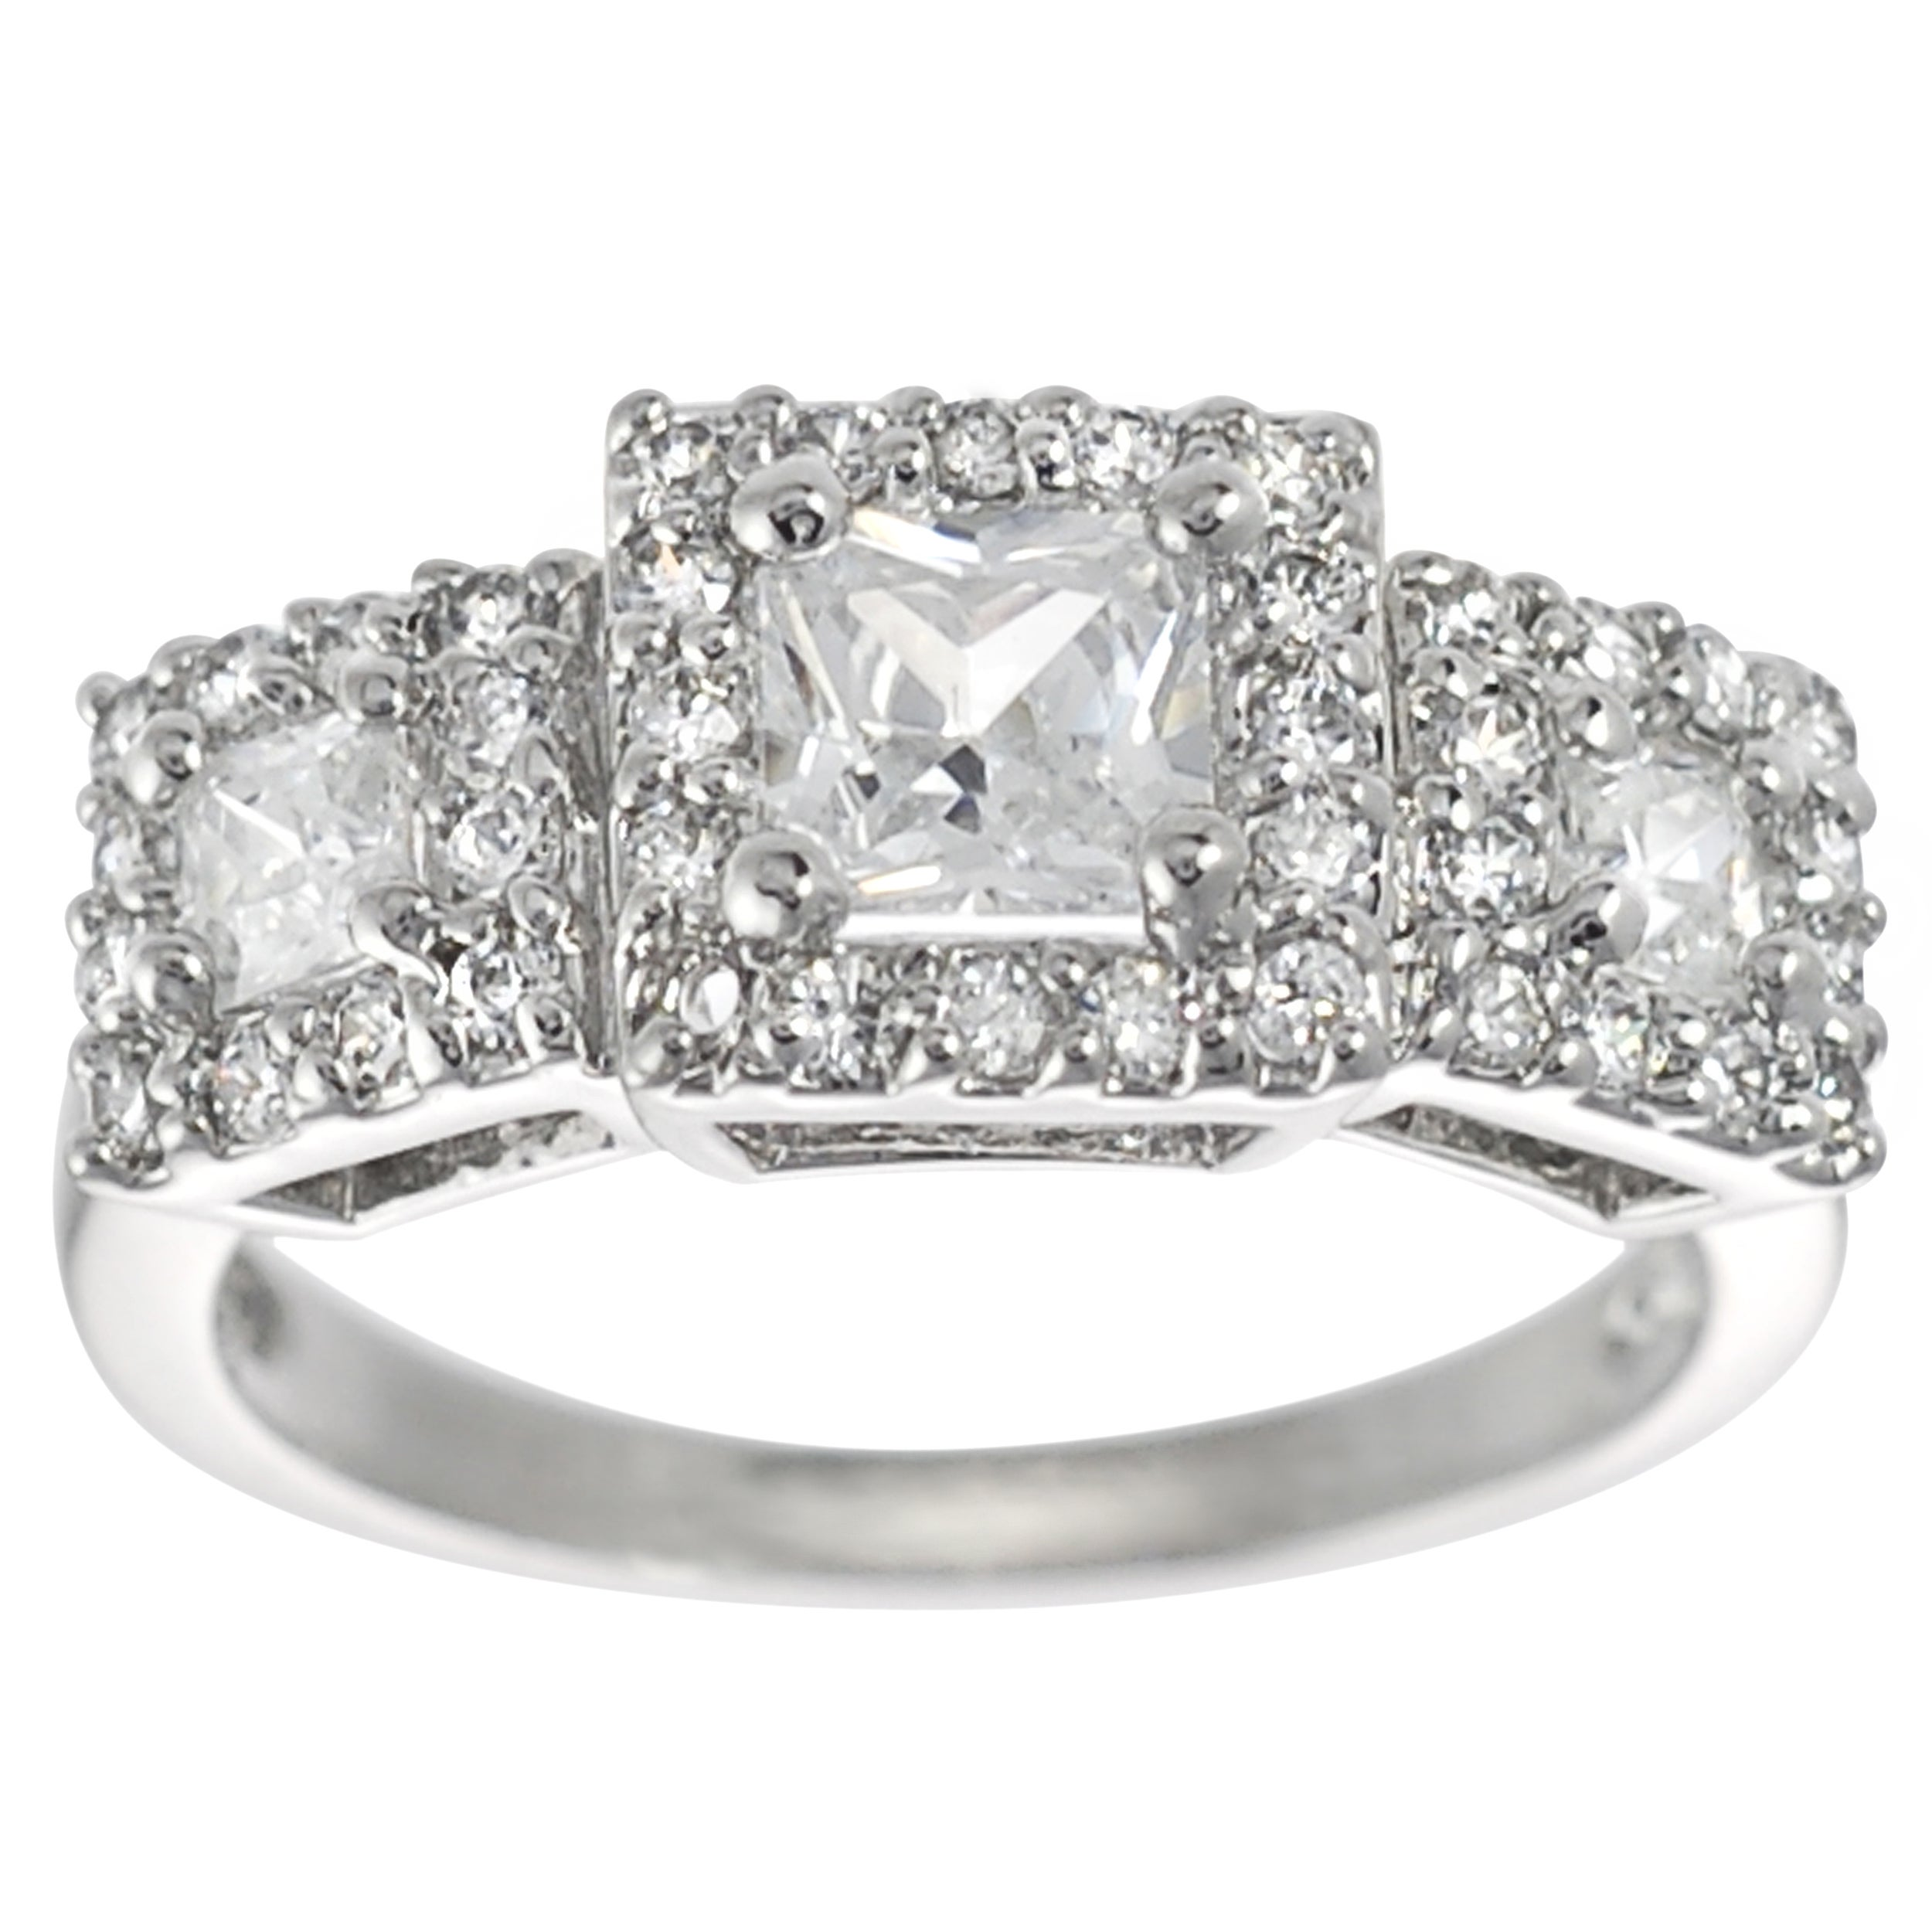 Journee Collection Sterling Silver Princess-cut Cubic Zirconia Engagement Ring